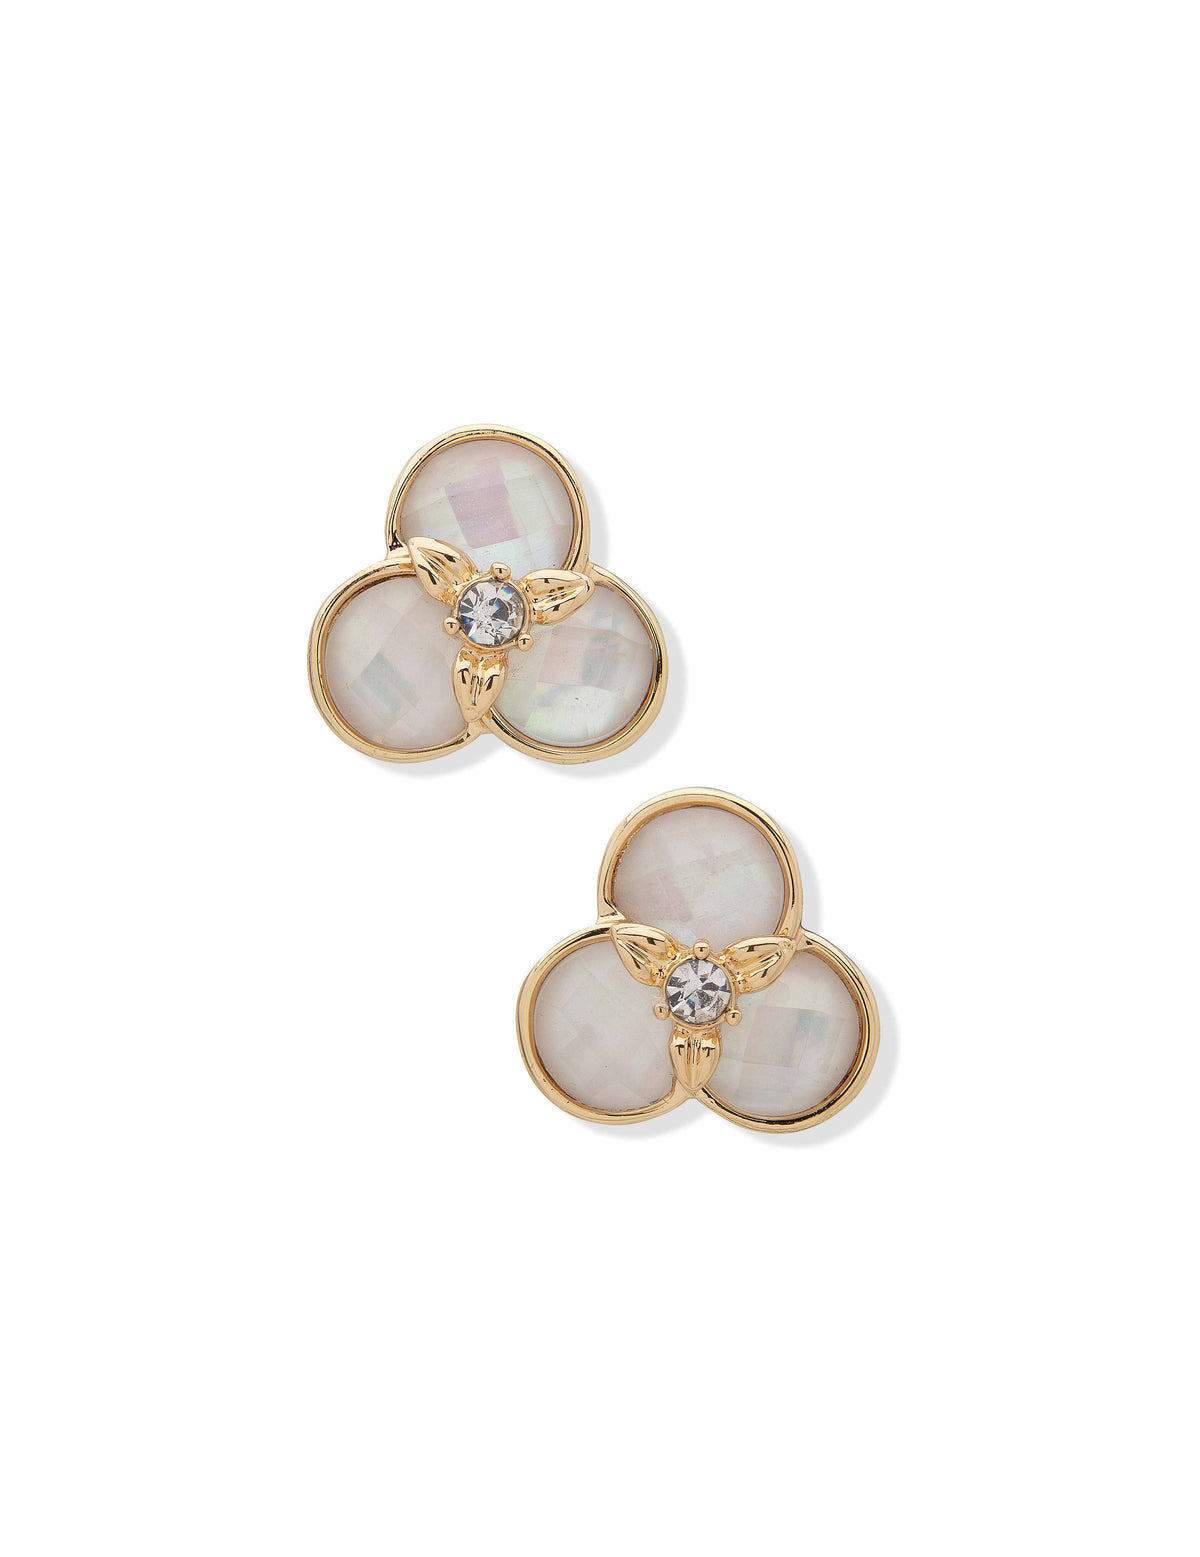 Anne Klein Gold-Tone Flower Button Clip Earrings